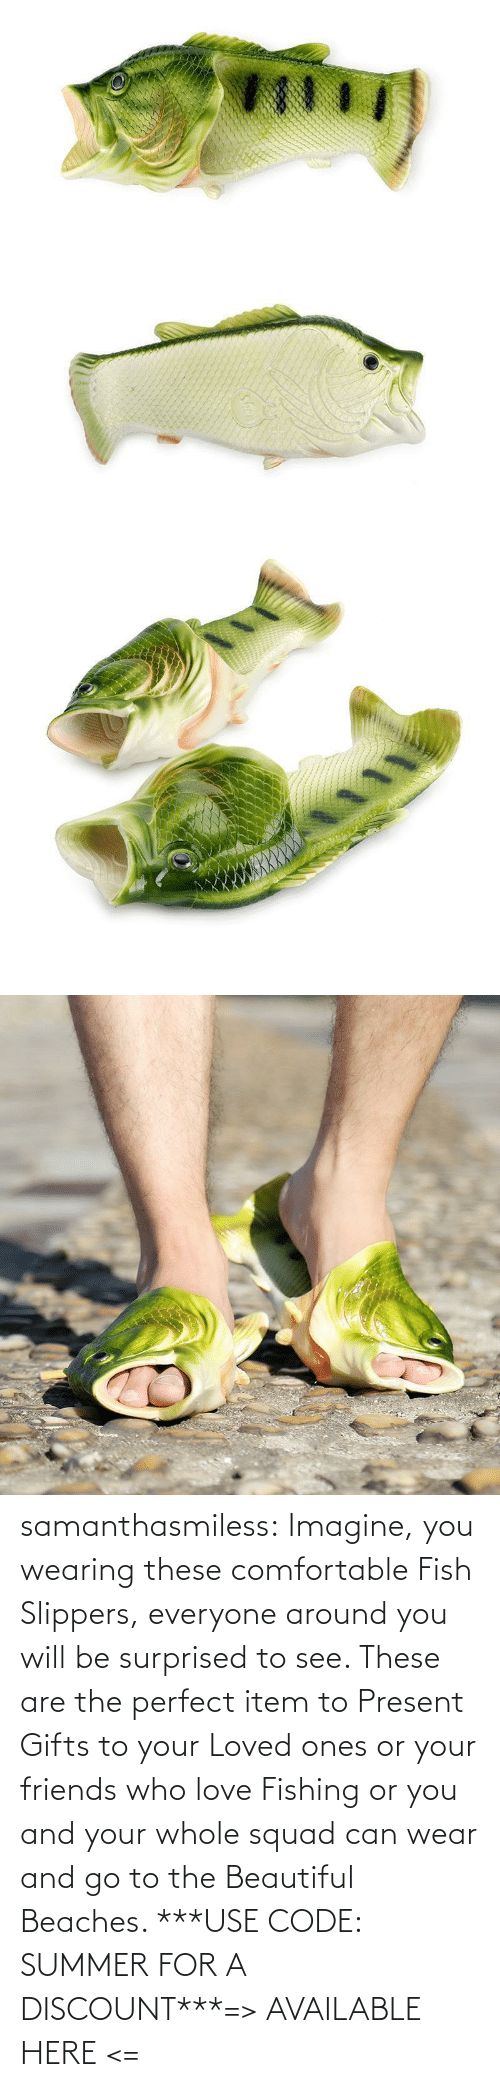 These: samanthasmiless:  Imagine, you wearing these comfortable Fish Slippers, everyone around you will be surprised to see. These are the perfect item to Present Gifts to your Loved ones or your friends who love Fishing or you and your whole squad can wear and go to the Beautiful Beaches. ***USE CODE: SUMMER FOR A DISCOUNT***=> AVAILABLE HERE <=